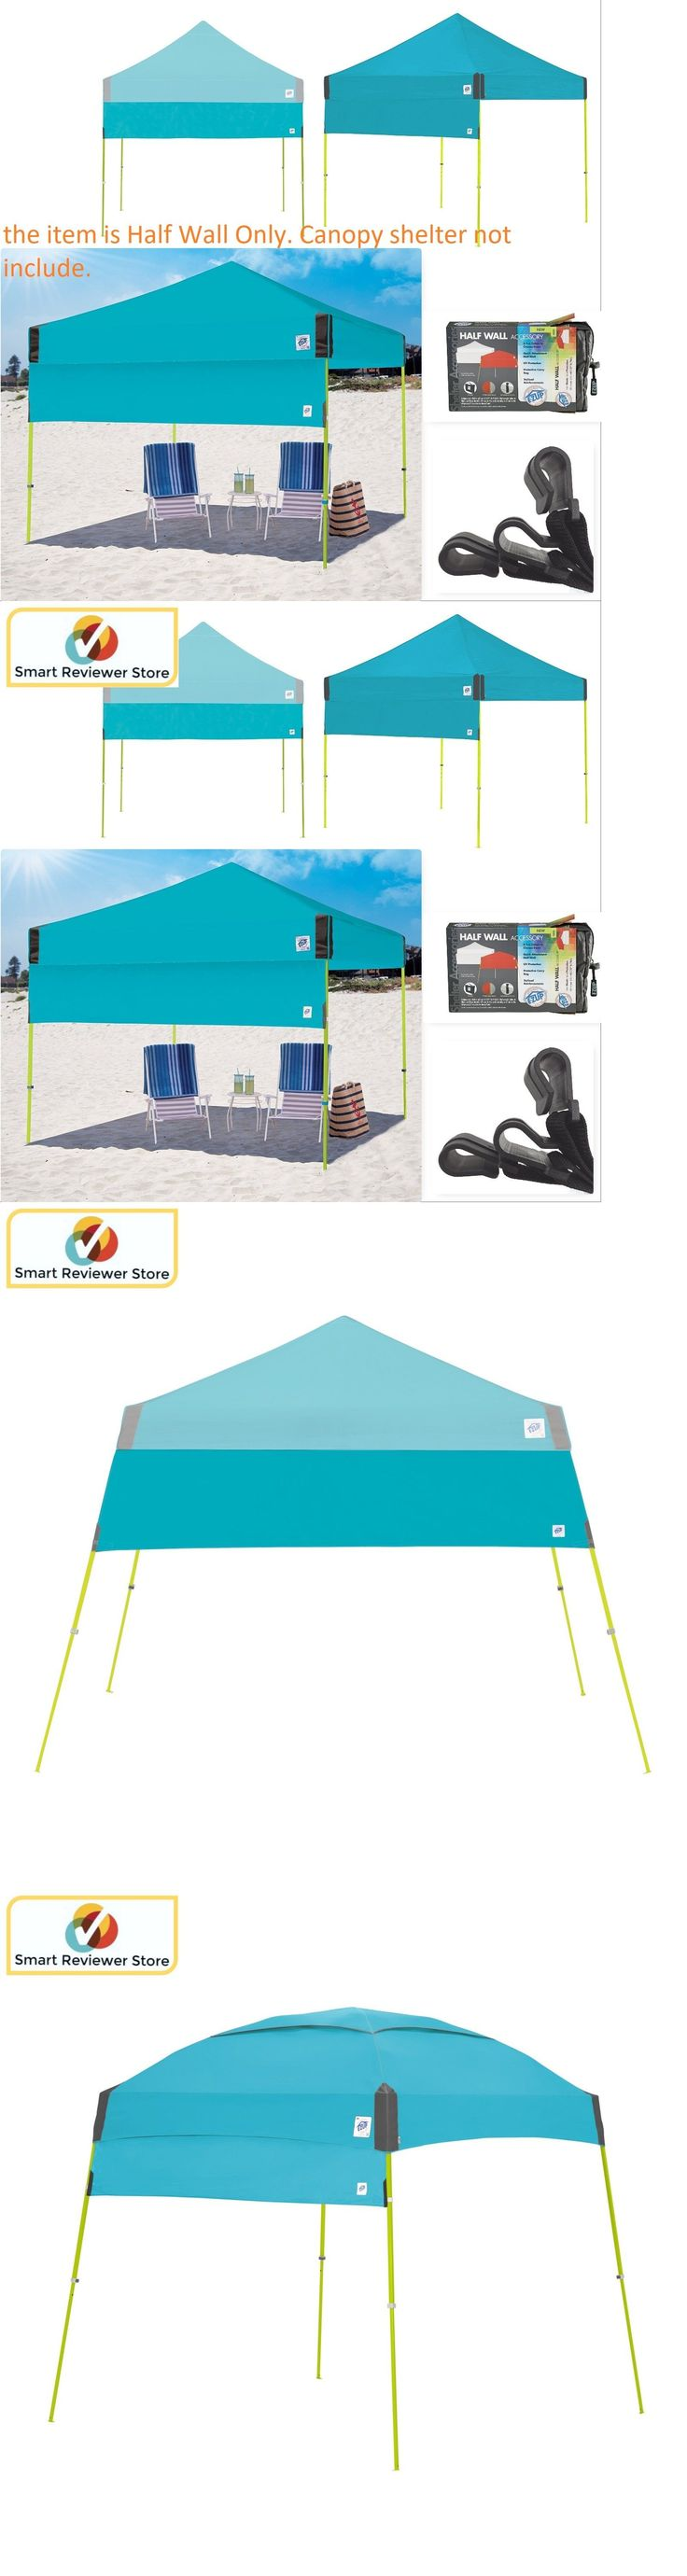 Canopies and Shelters 179011 Instant Canopy Tent 10X10 Half Wall Outdoor Pop Up Gazebo Patio  sc 1 st  Pinterest & Pinterestu0027teki 25u0027den fazla en iyi Buy gazebo fikri | Bahçe ...